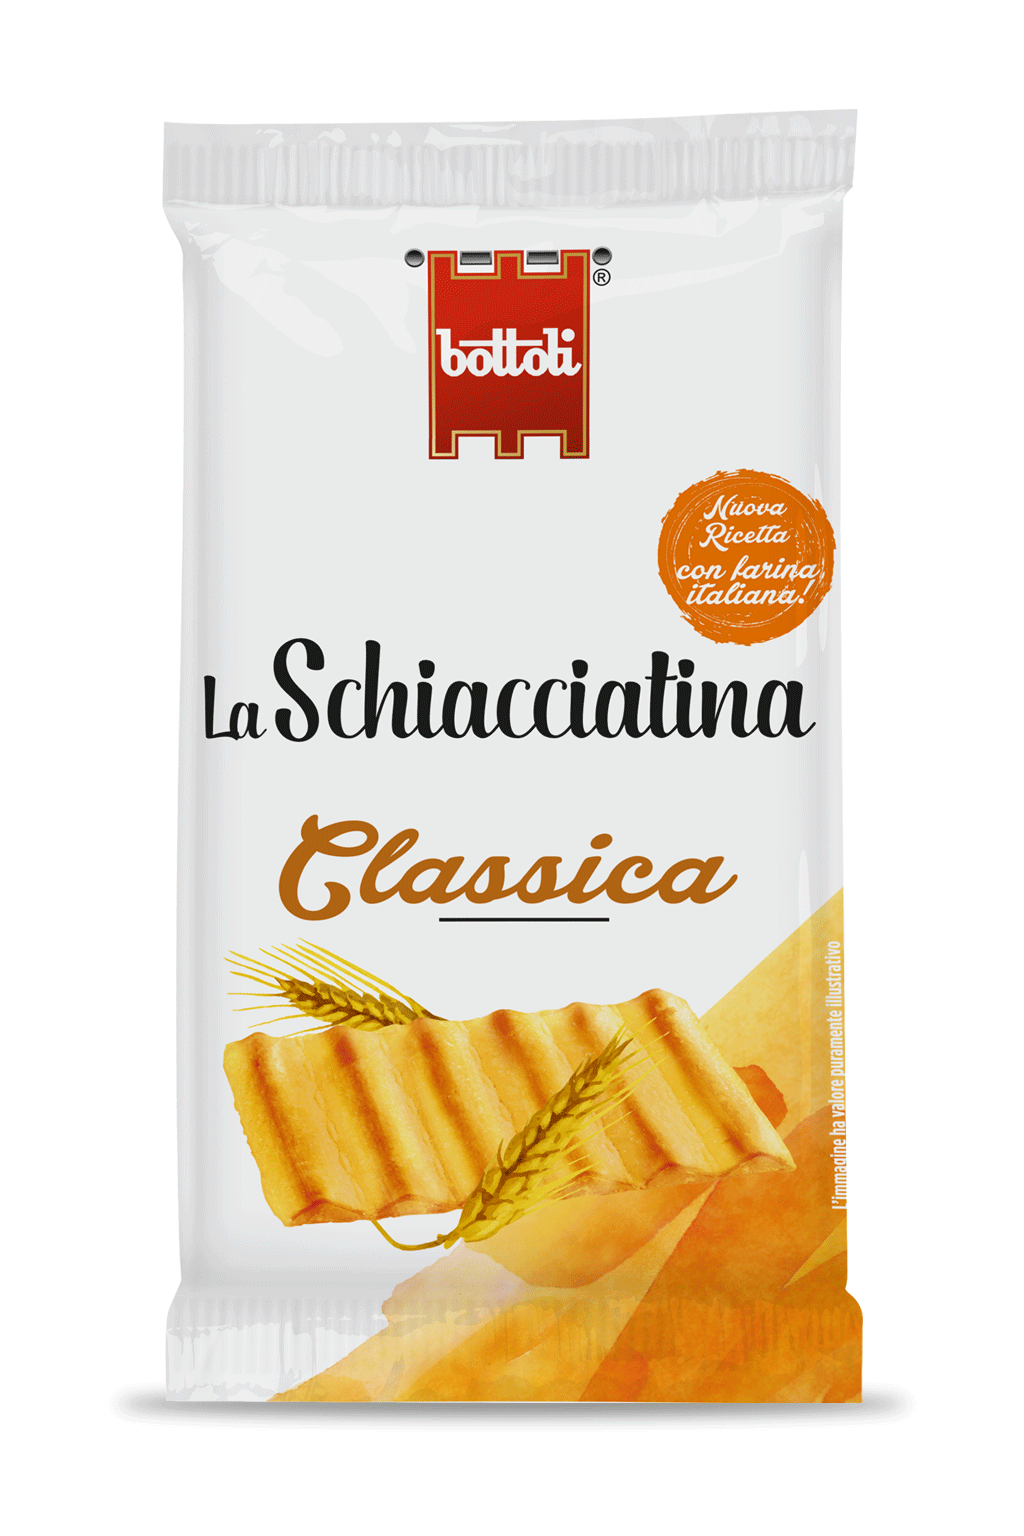 Schiacciatina Classic single-serve pack